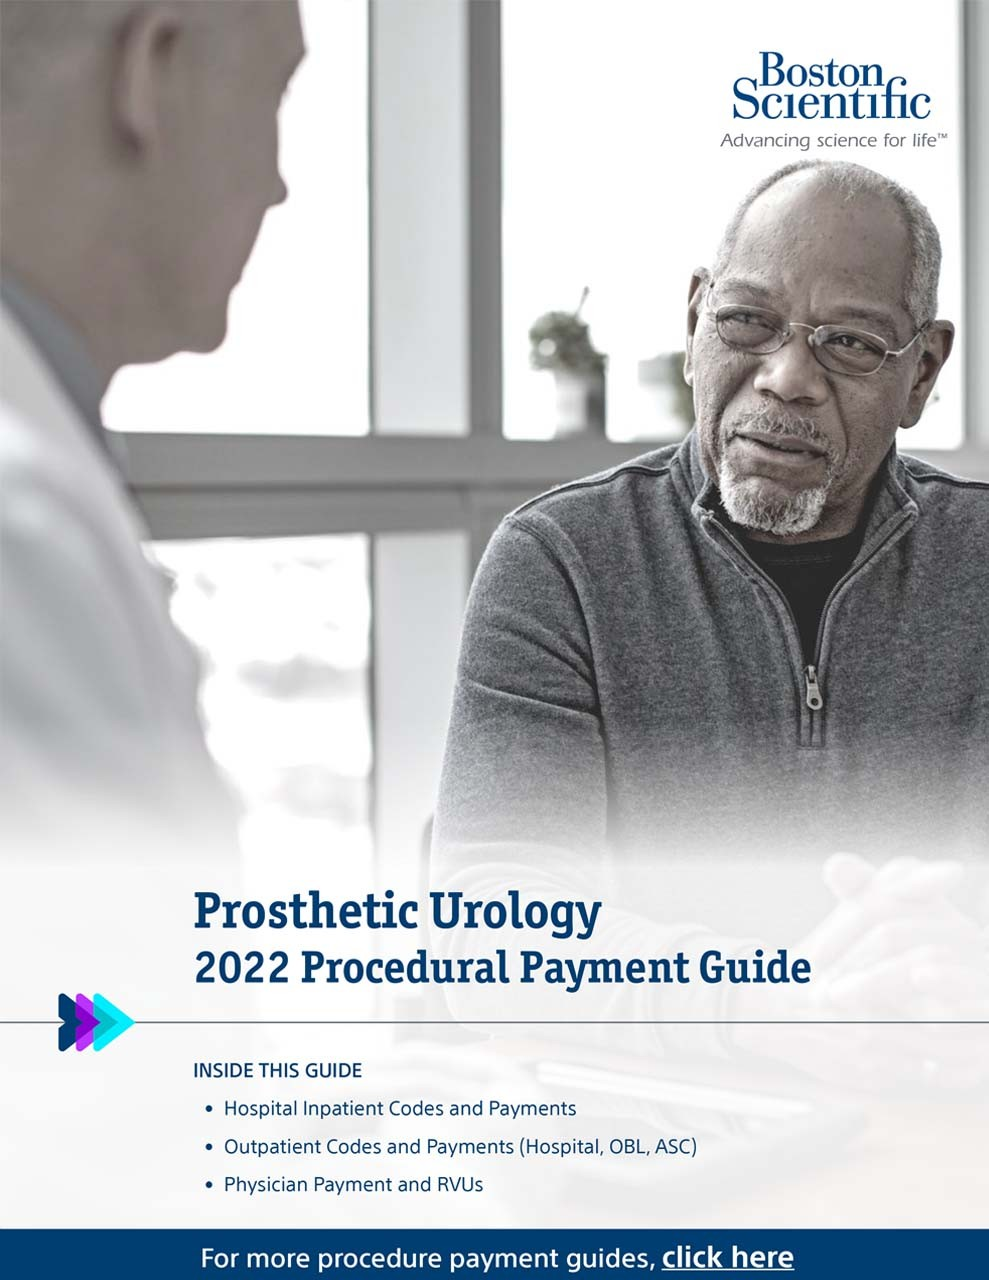 Prosthetic Urology Coding and Payment Guide